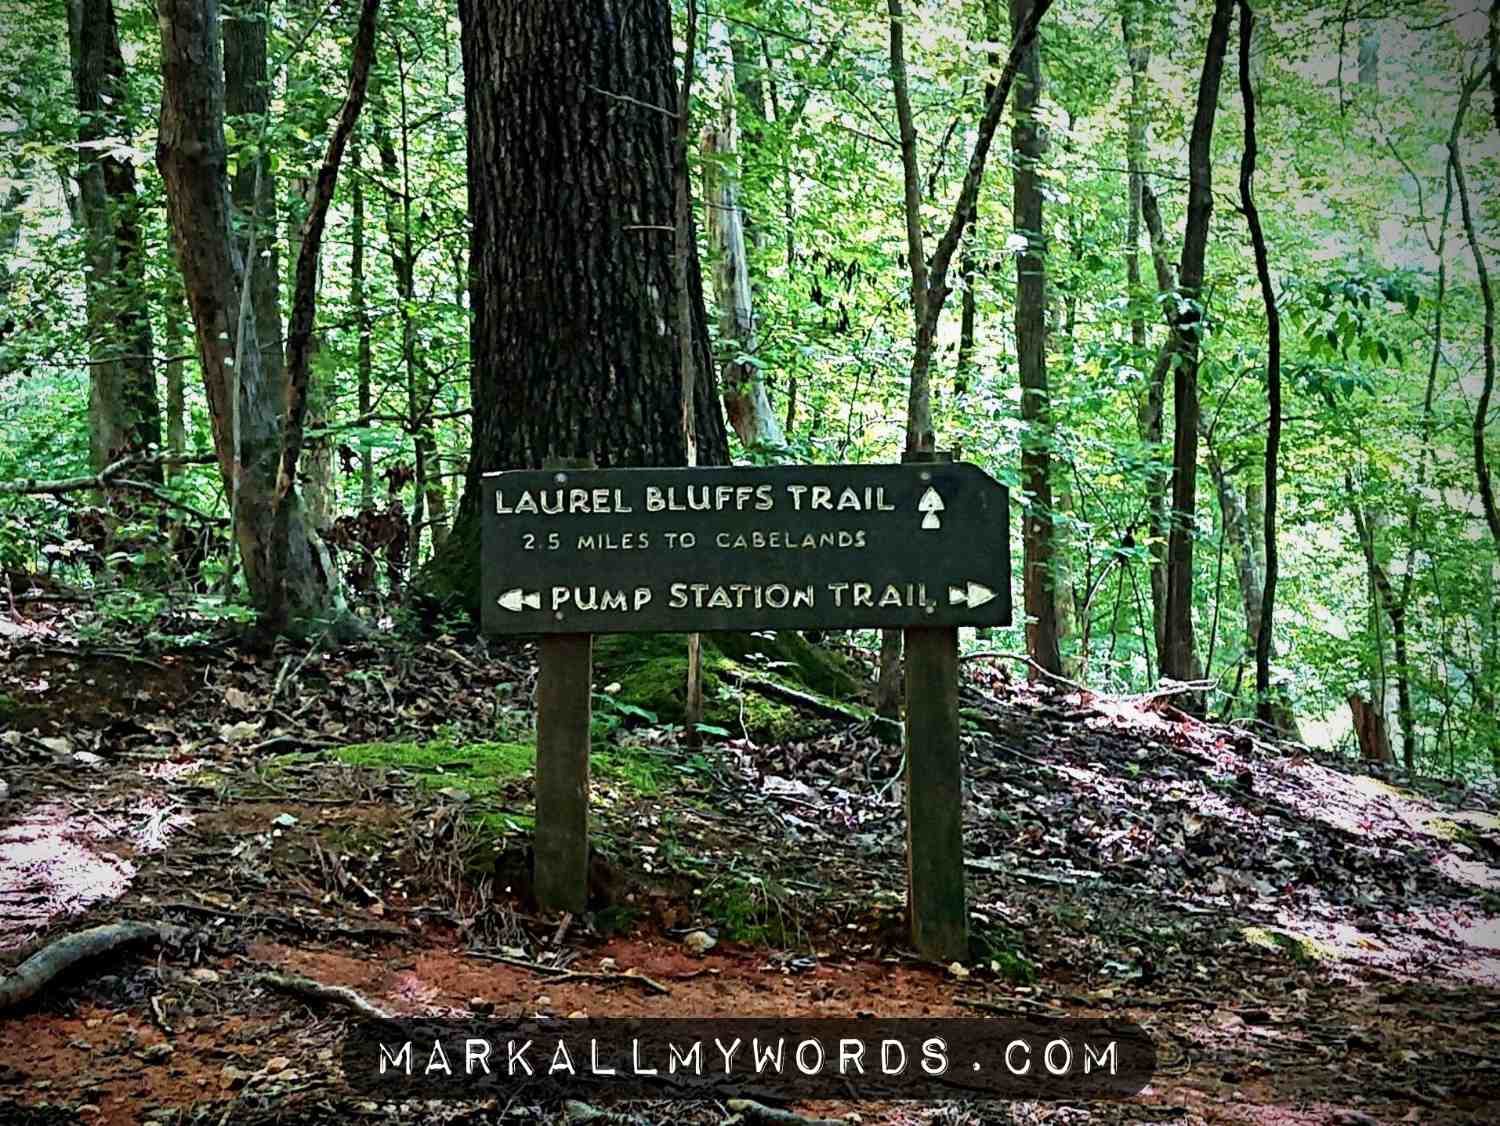 Sign in forest pointing to trail